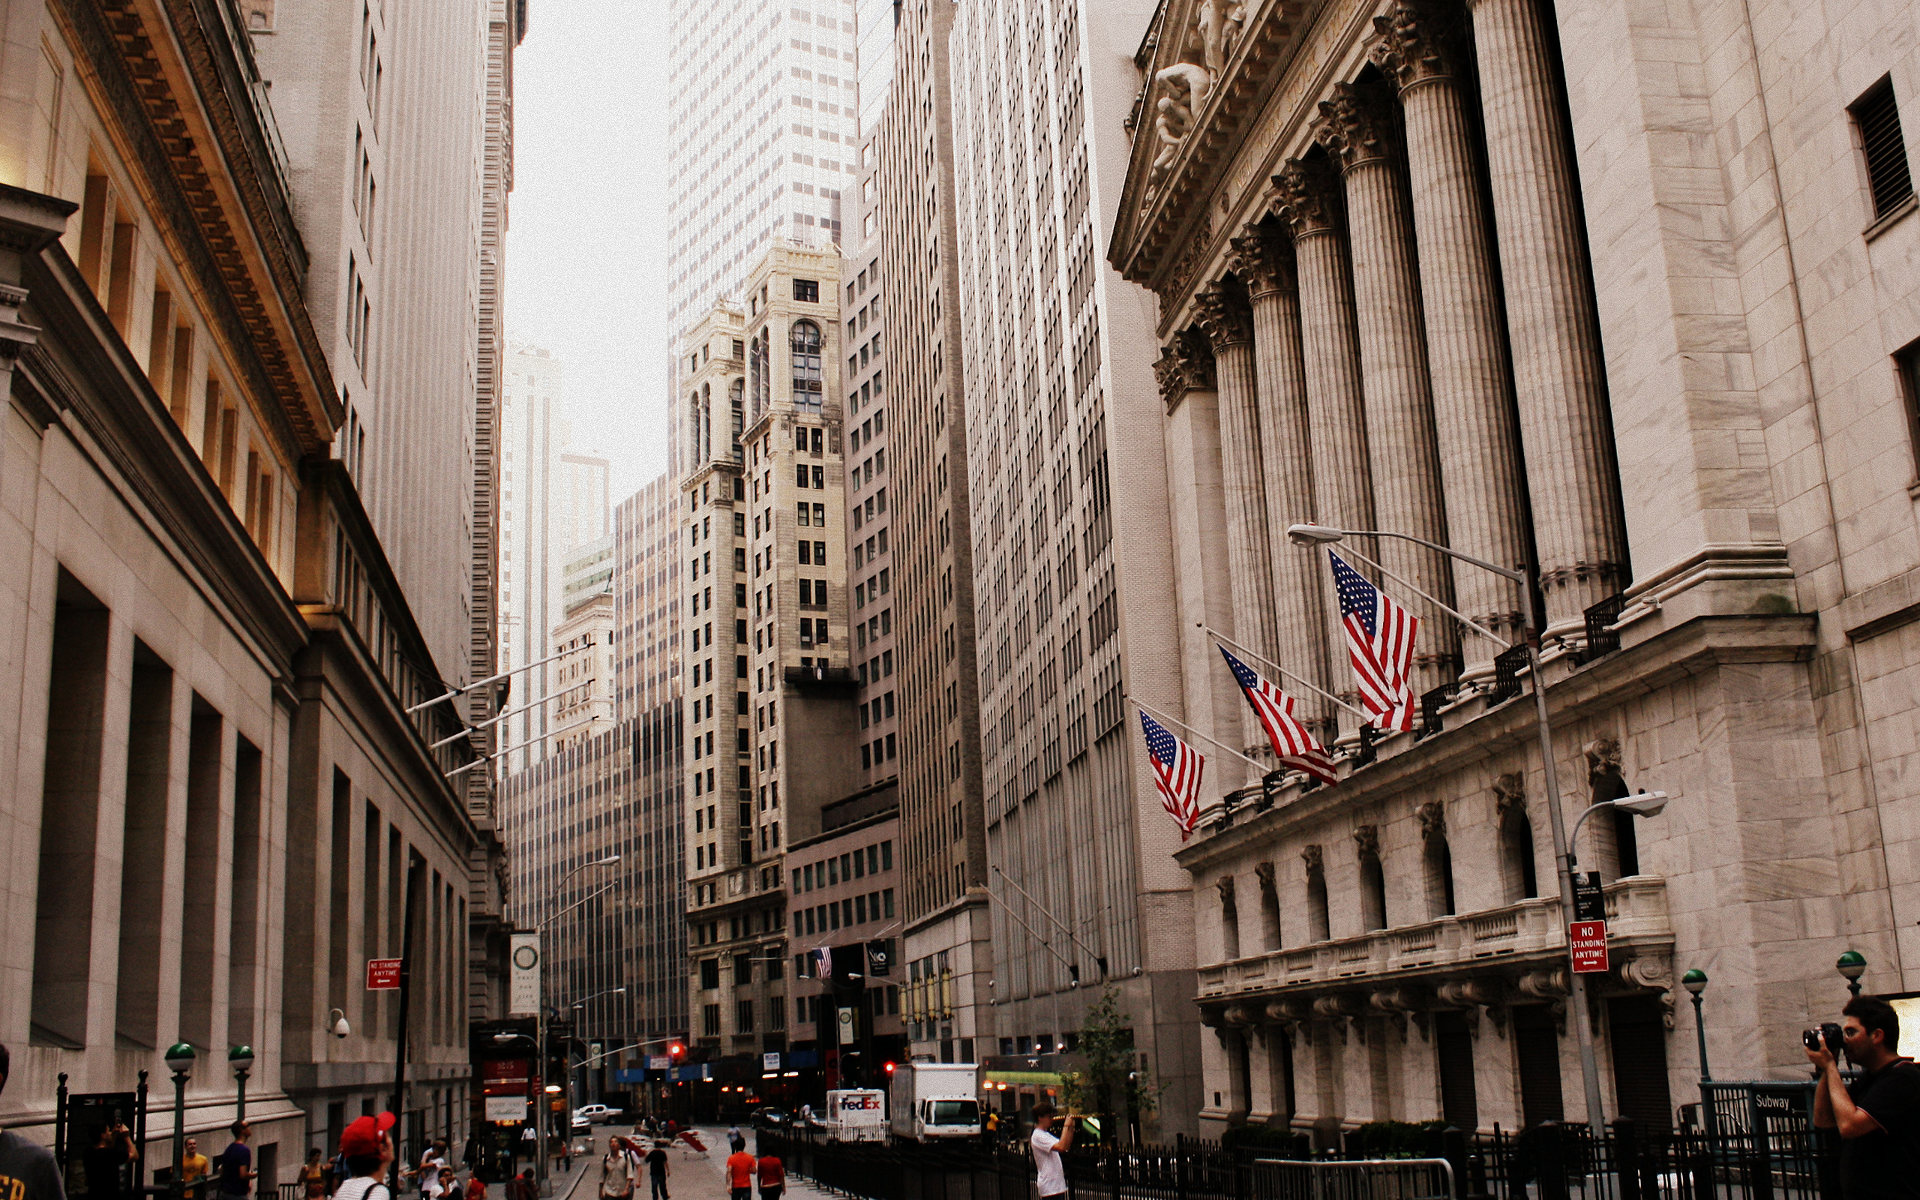 Download: Wall Street HD Wallpaper